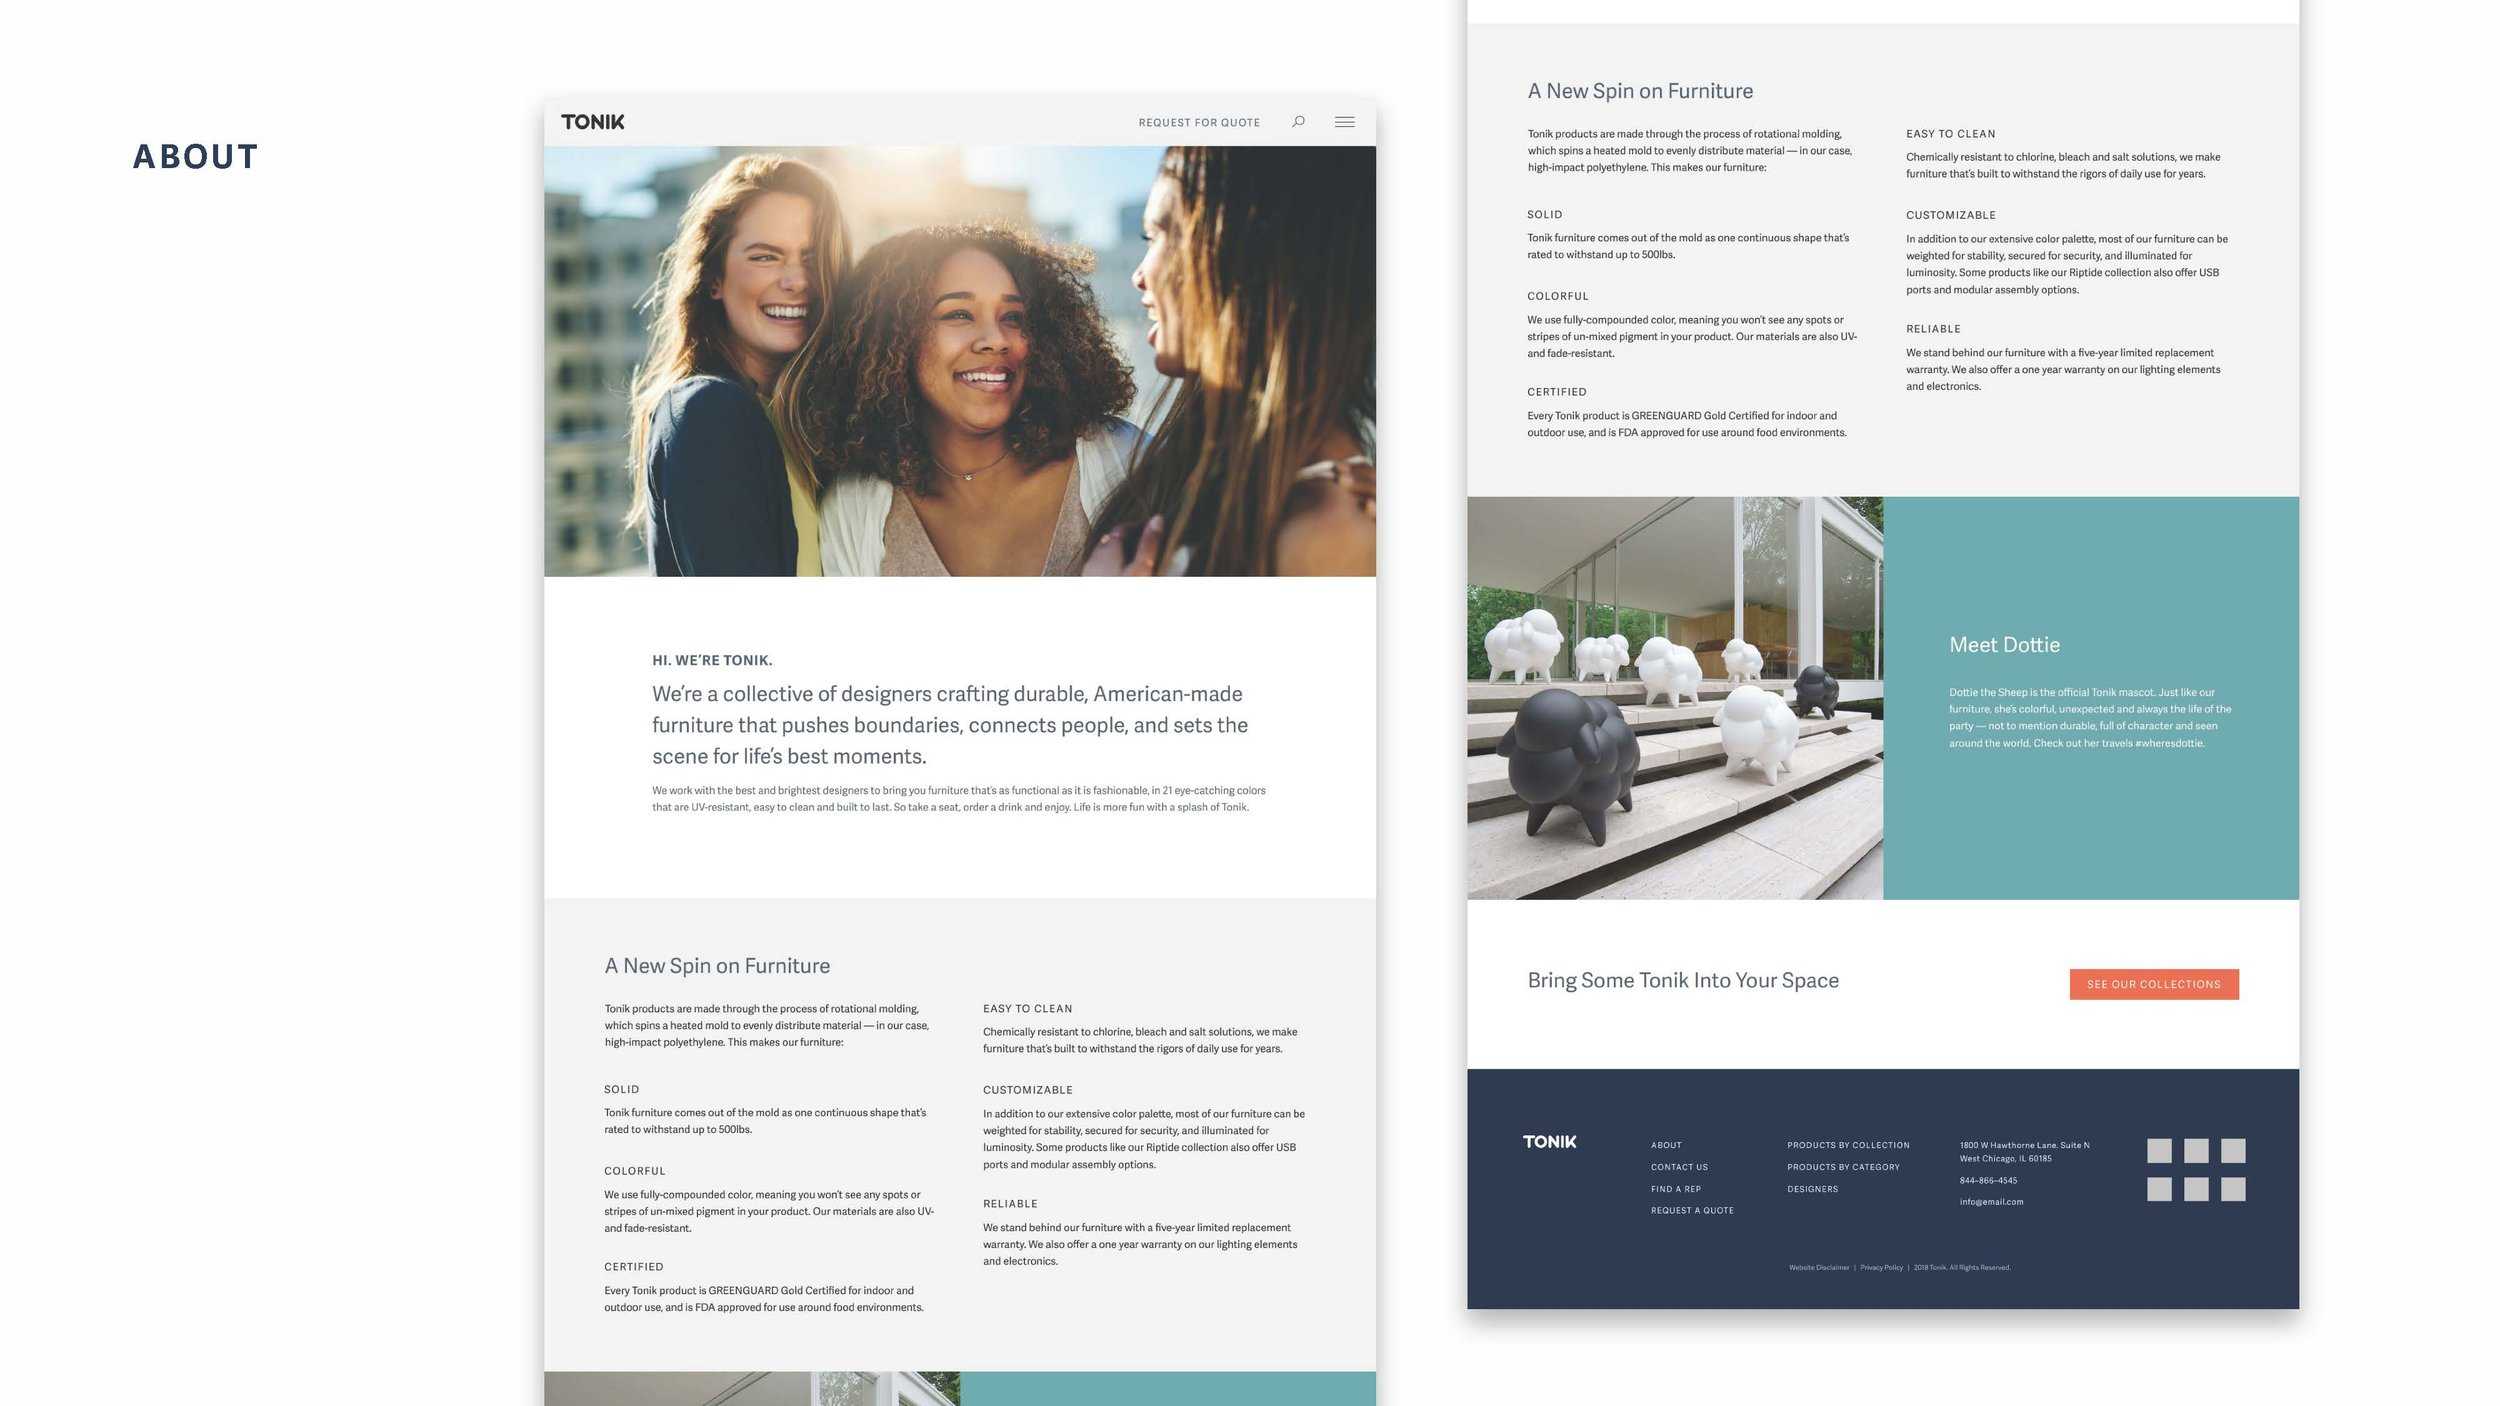 TON_Brand Guidelines-_Page_33.jpg